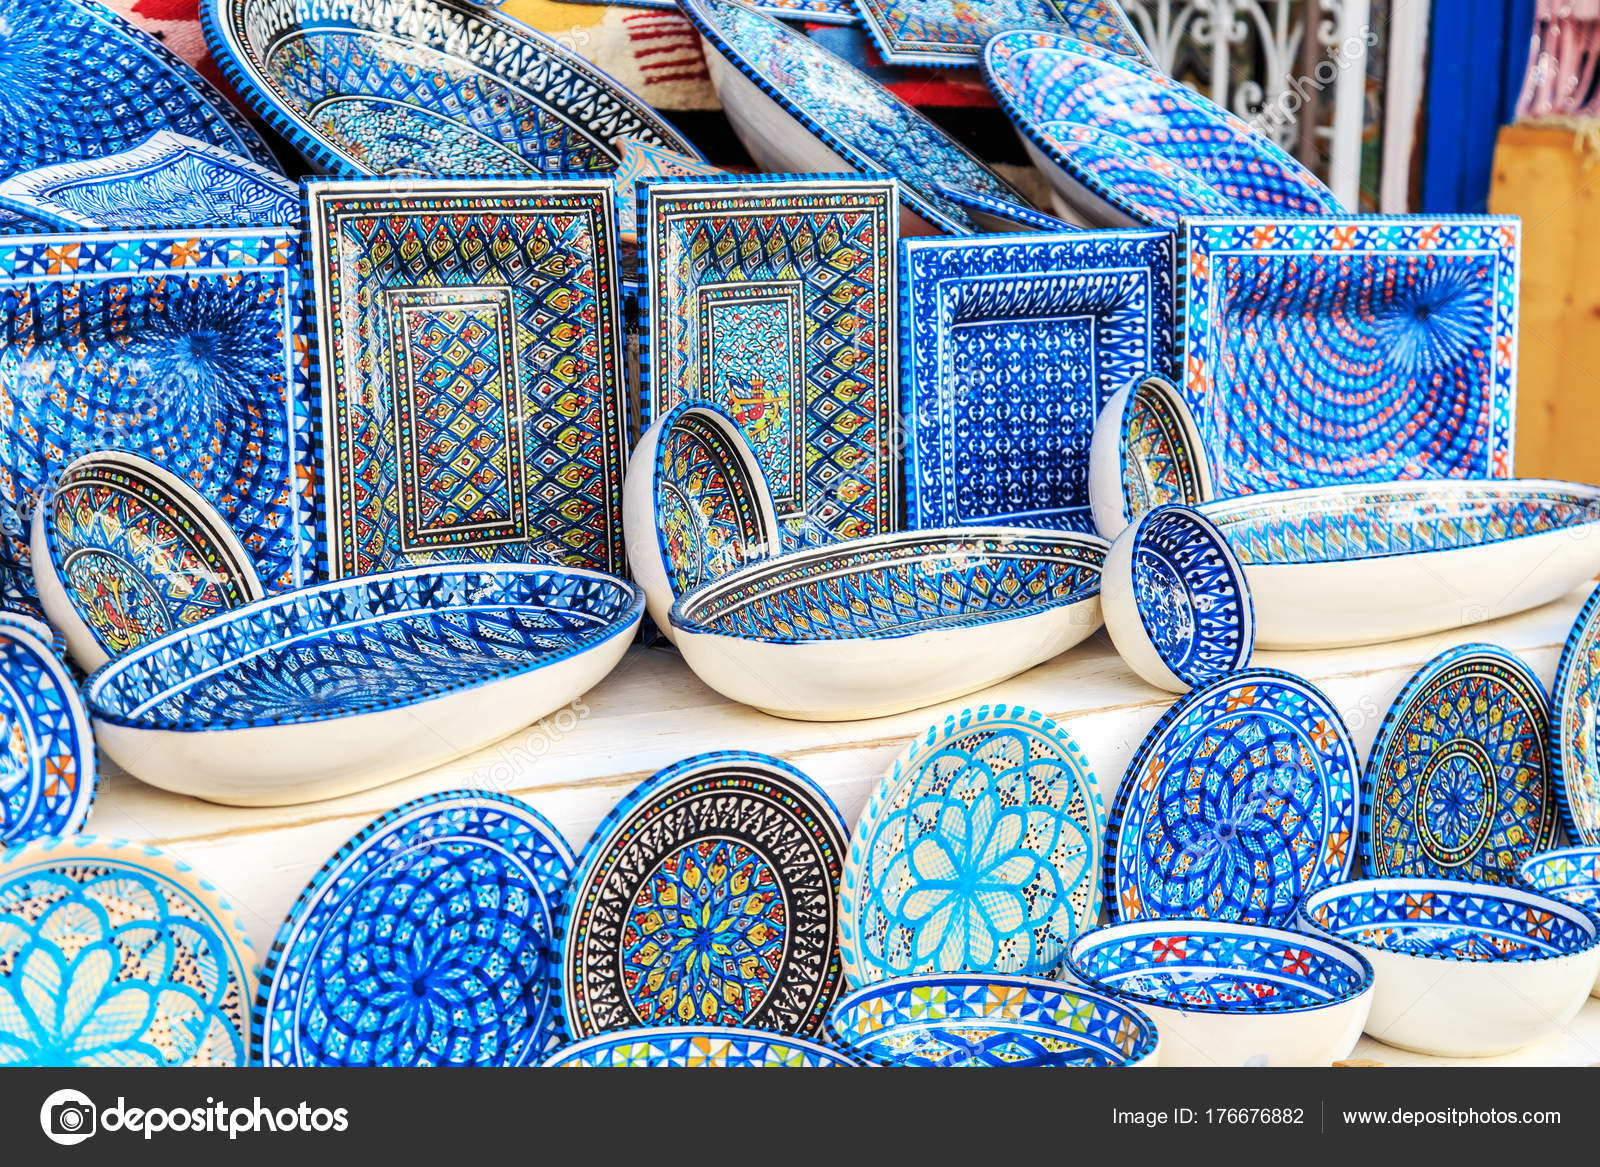 Souvenir earthenware in tunisian market. u2014 Stock Photo  sc 1 st  Depositphotos & Souvenir earthenware in tunisian market. u2014 Stock Photo ...